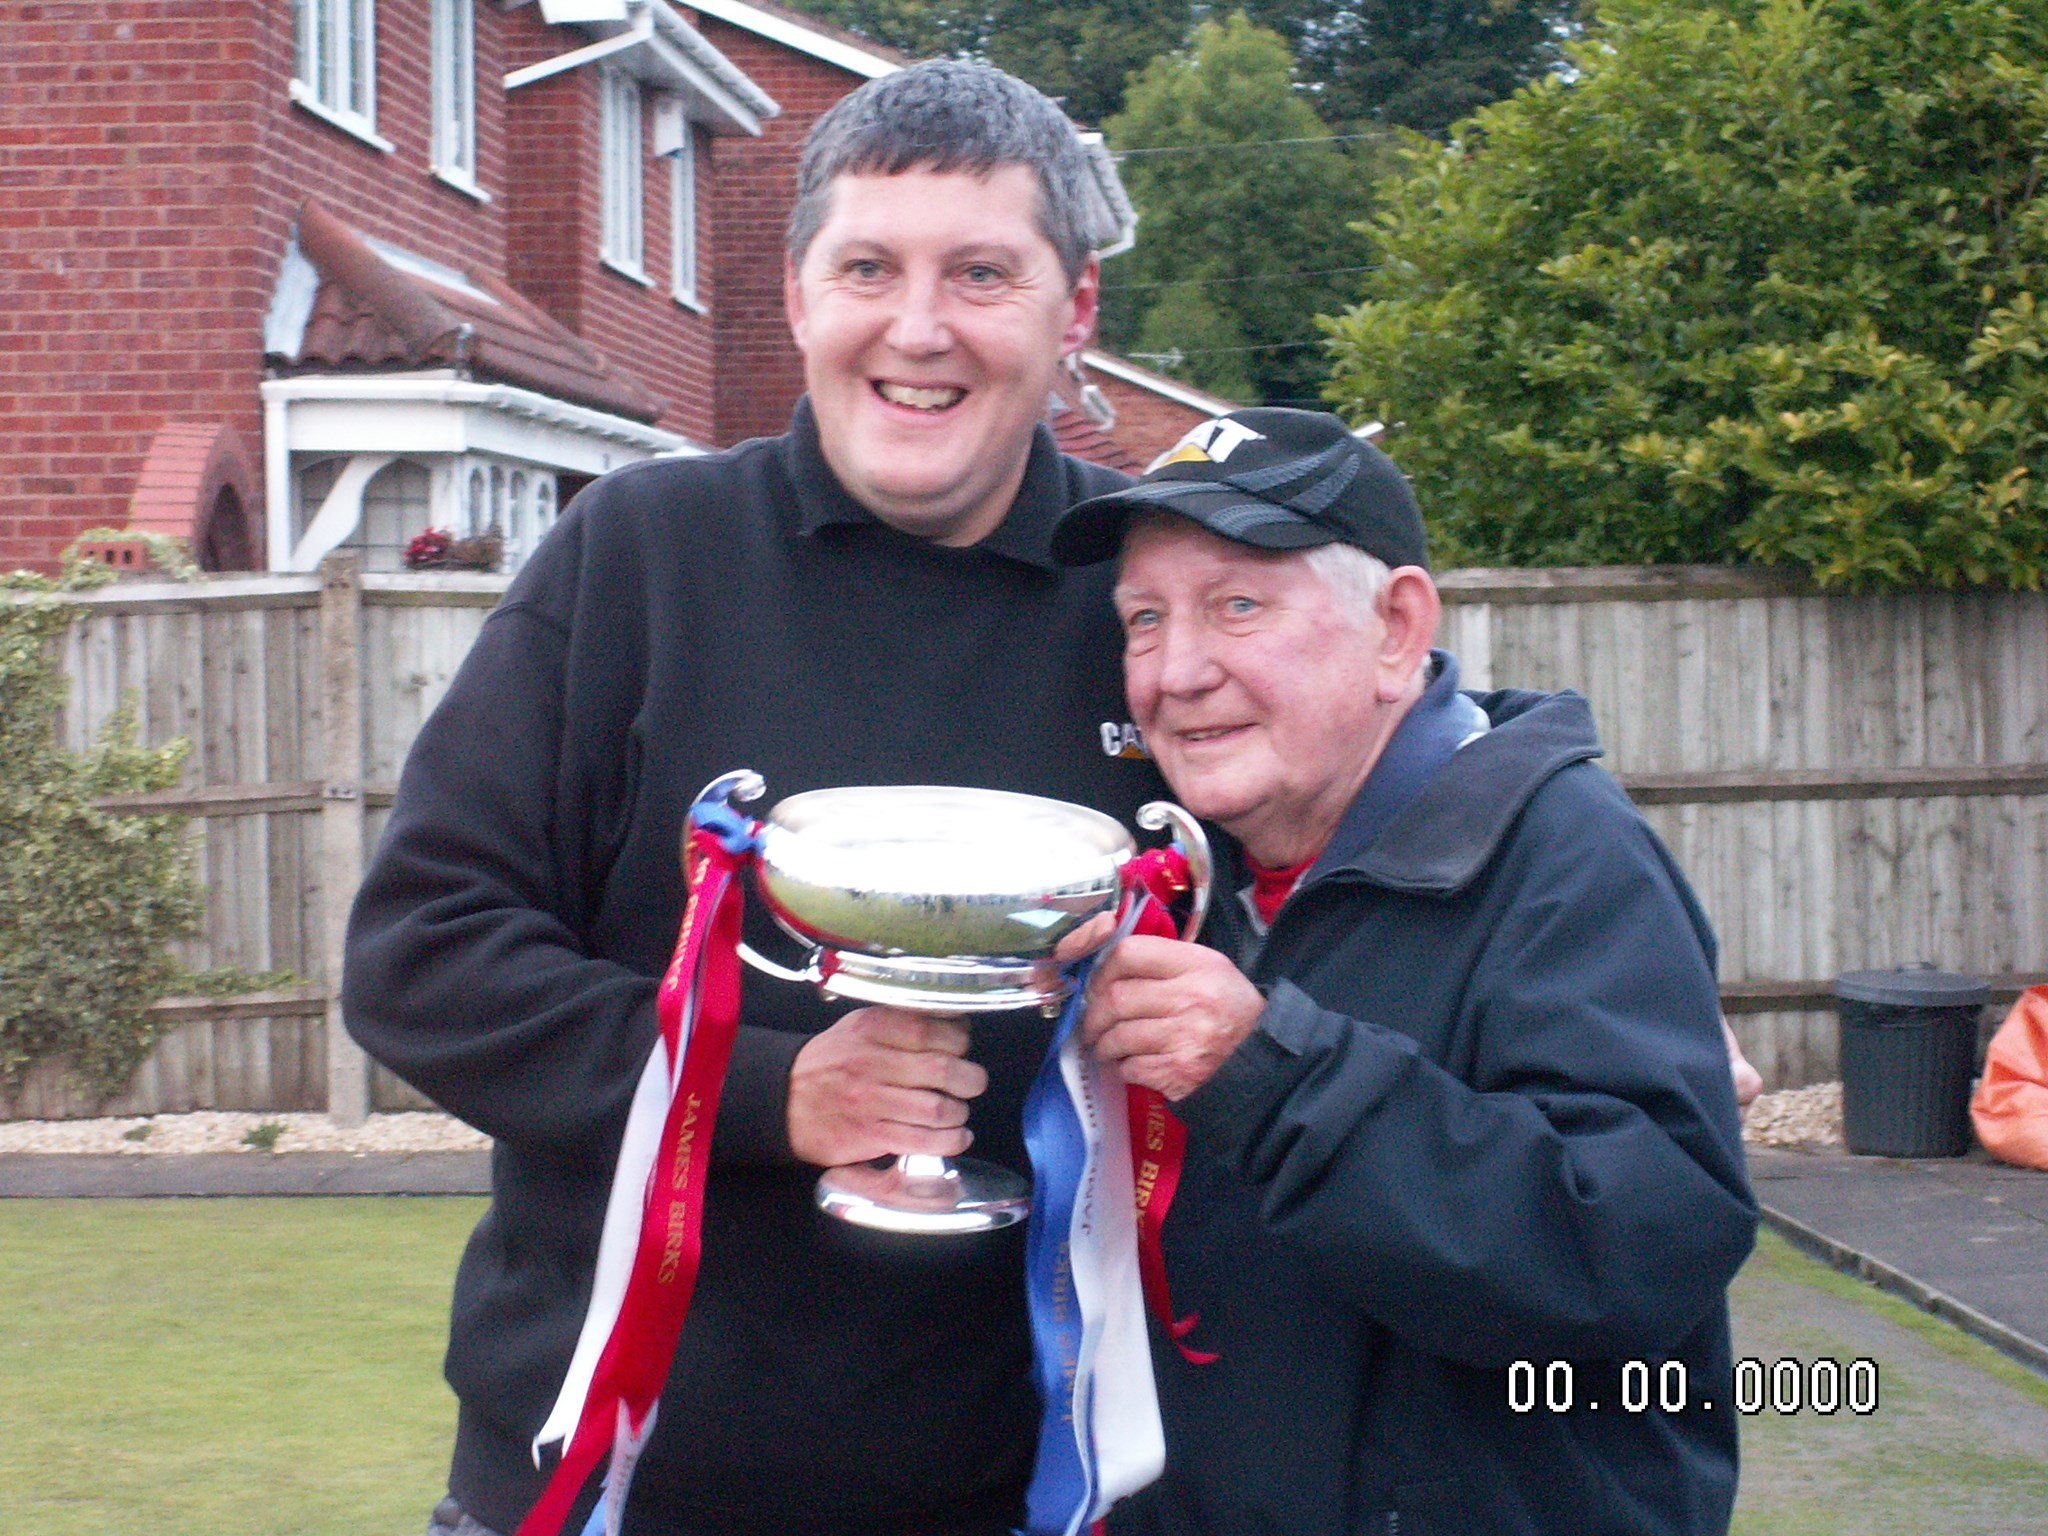 ONE PROUD FATHER - MIDLAND MASTERS 2010